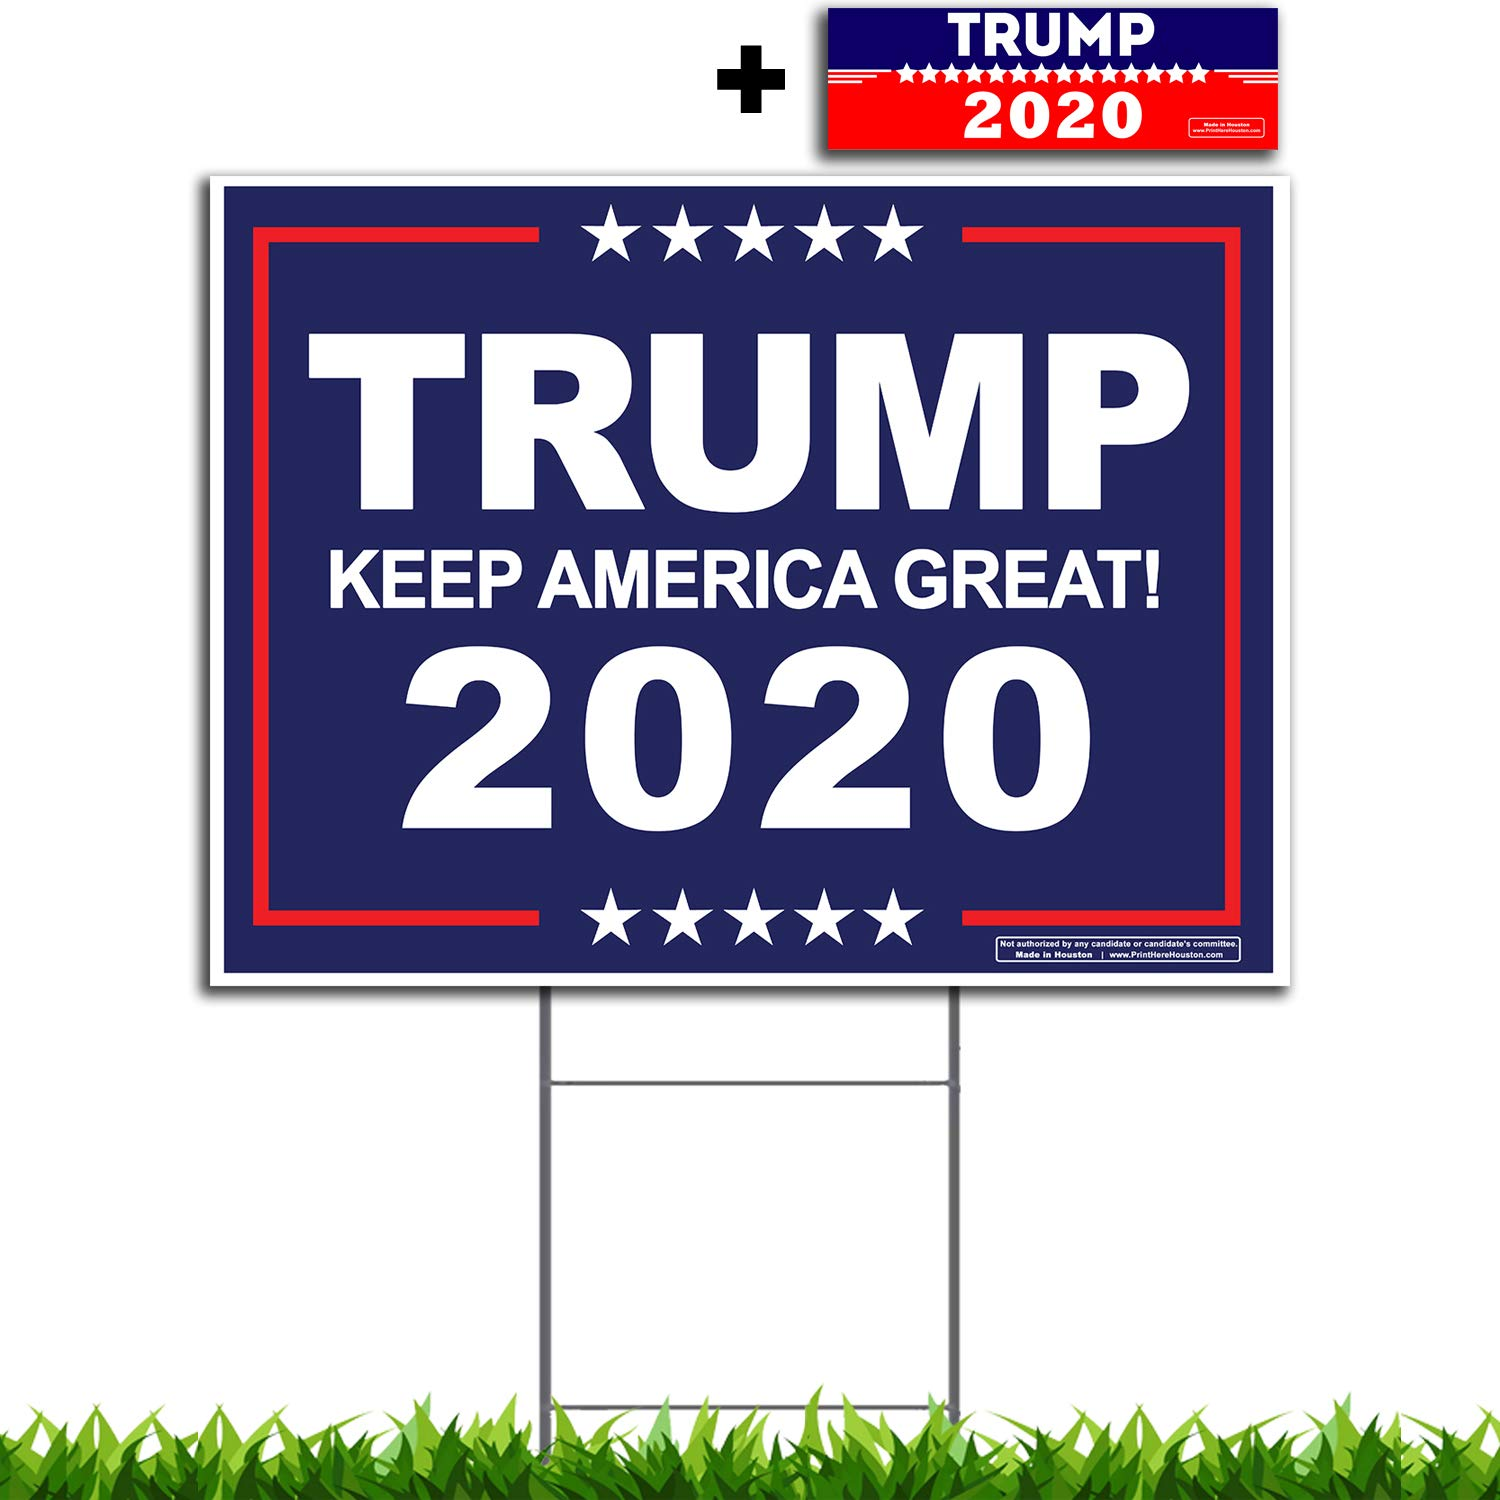 VIBE INK President Donald Trump - Keep America Great! 2020 Political Campaign Rally Yard Sign (24''x18'') Included Metal Stake - Made in America, Waterproof, Double Sided Print (Blue)